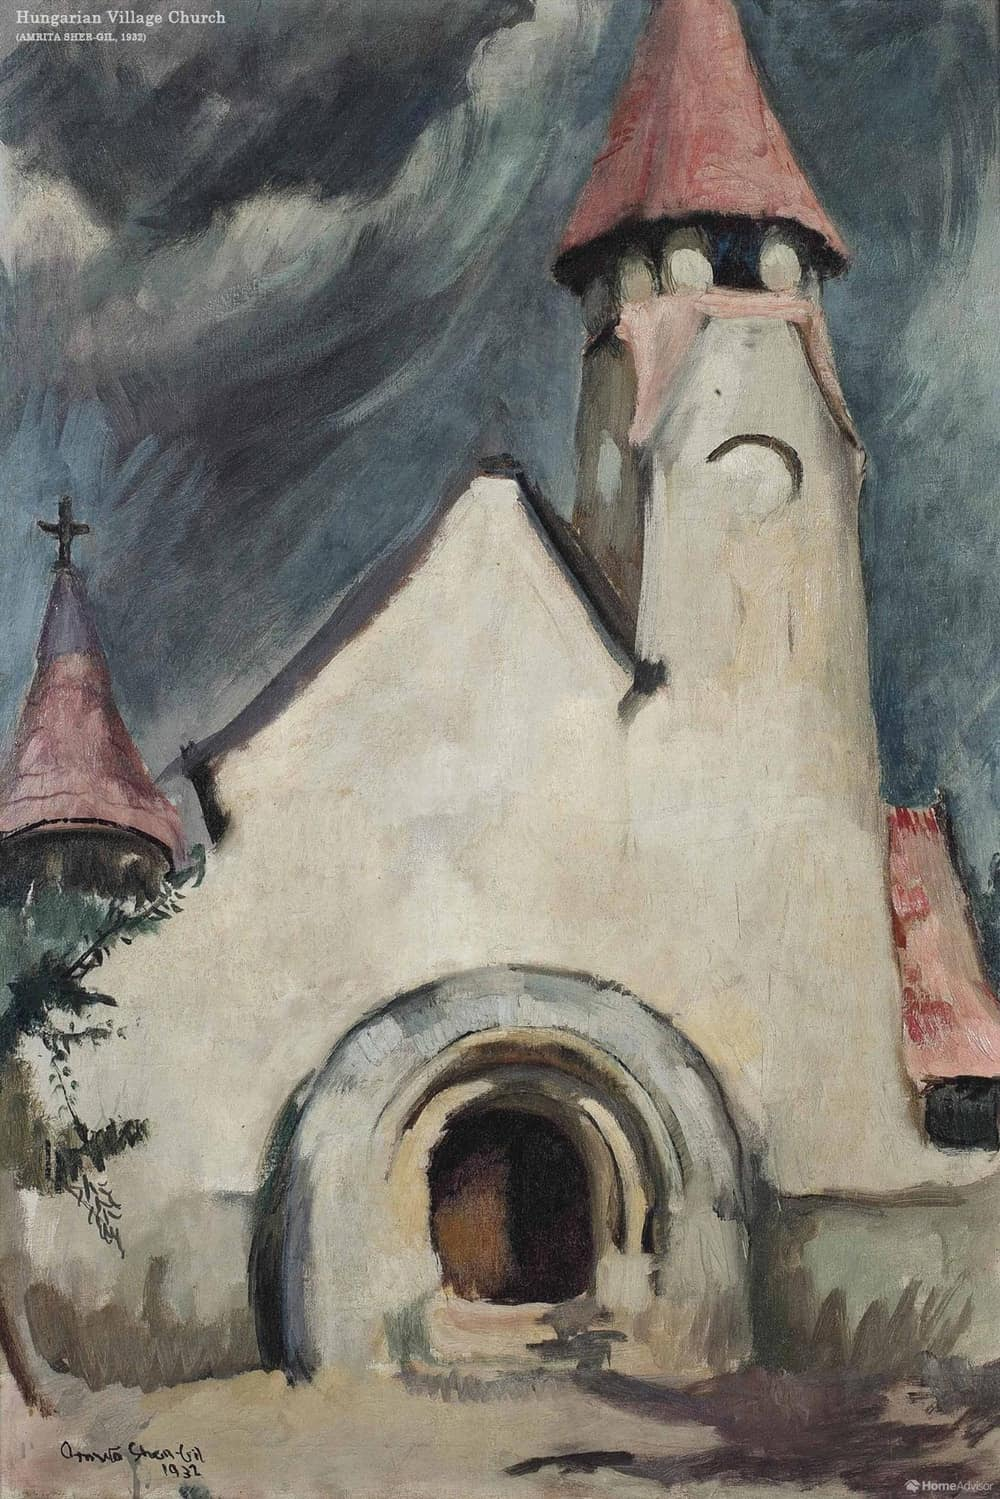 Hungarian Village Church by Amrita Sher-Gil